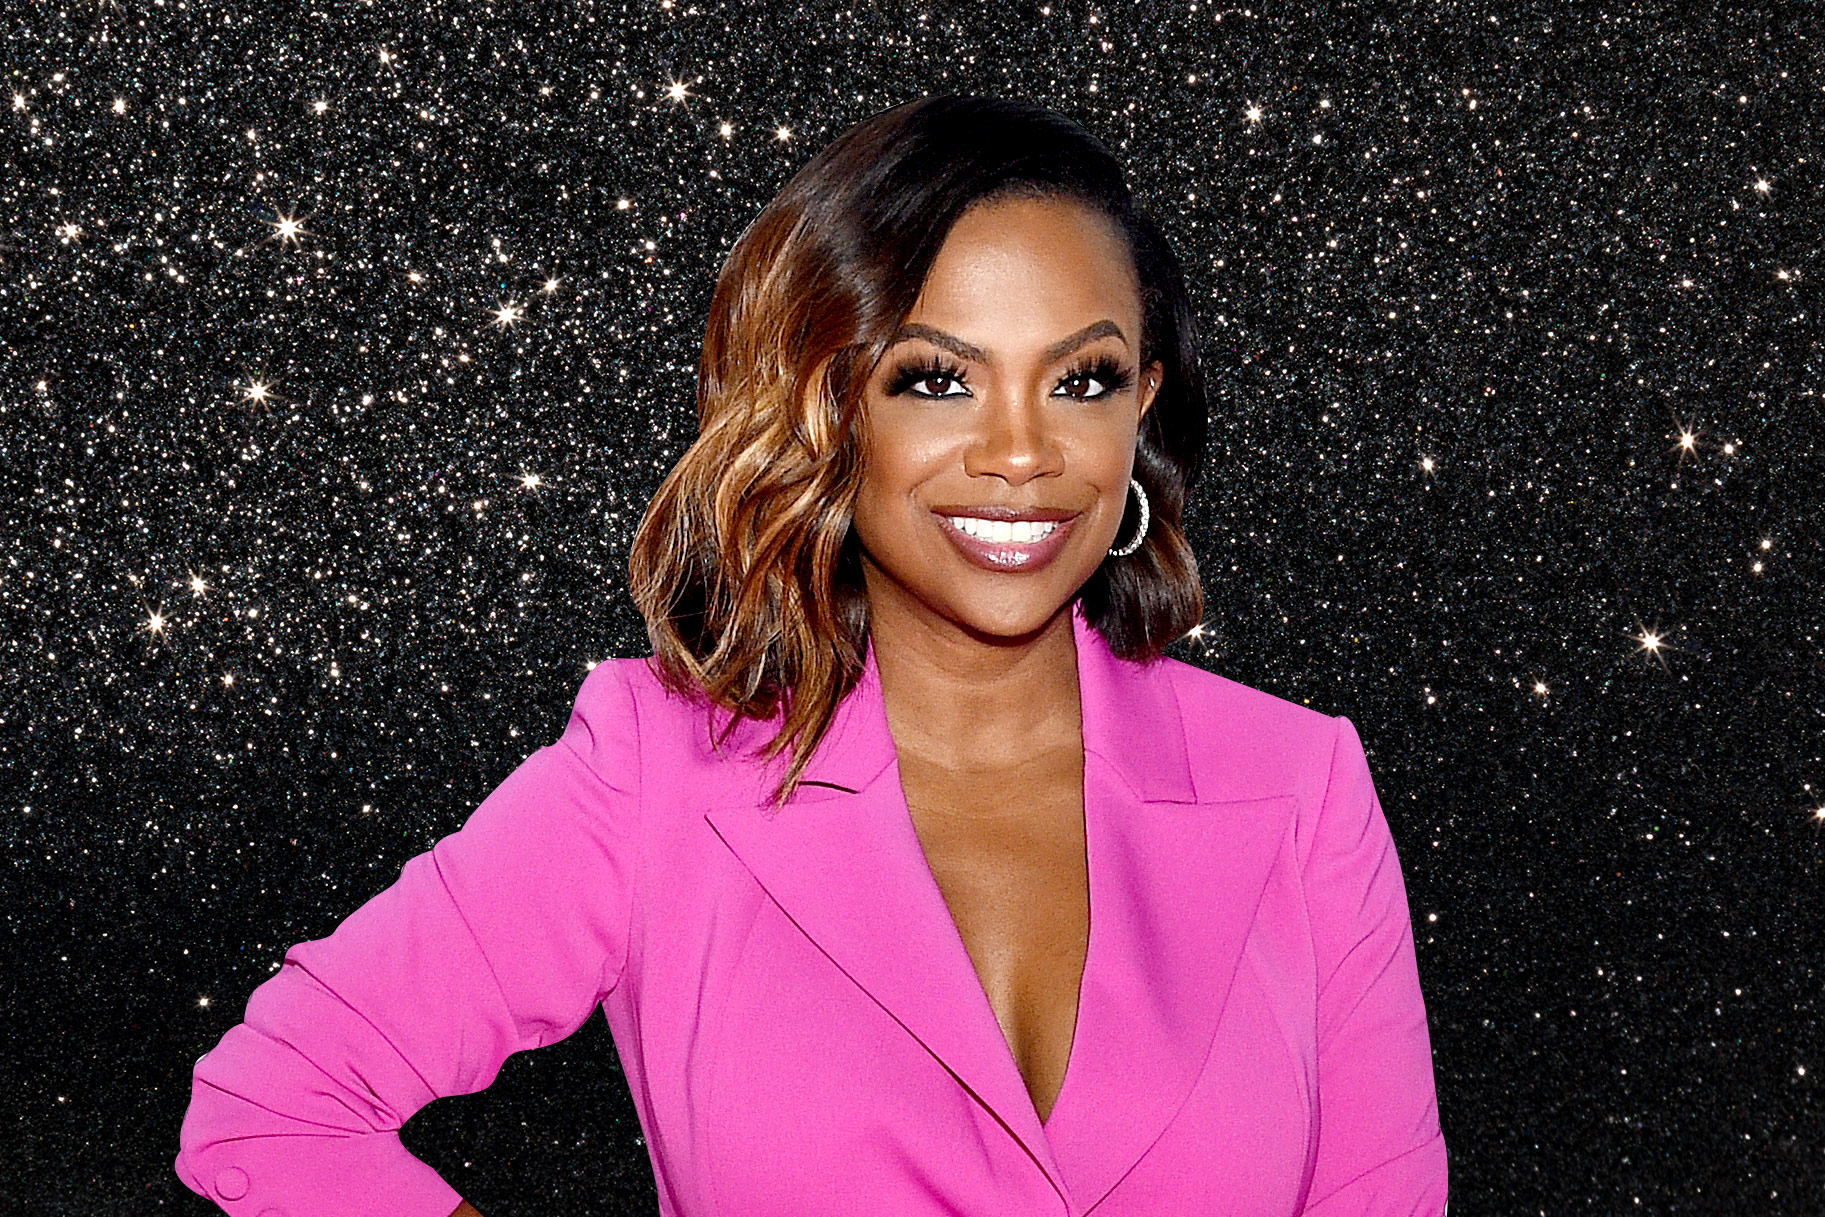 Kandi Burruss Shares Another Throwback Photo - Check Out Her Look With Short Hair